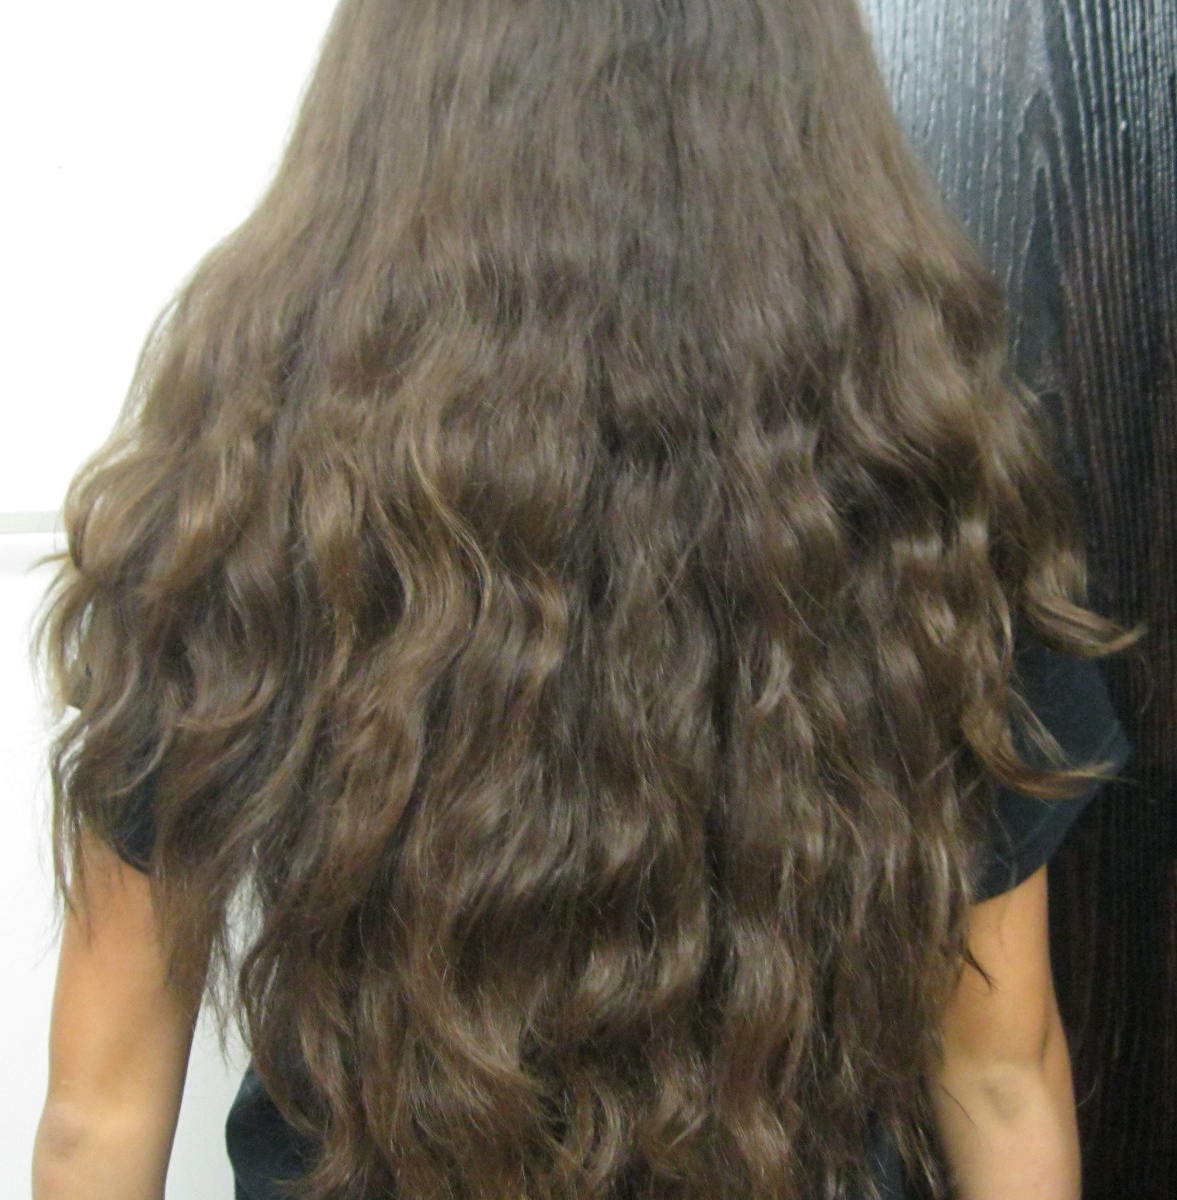 Wavy Hairstyles: Best Cuts And Styles For Long, Naturally Wavy Hair Intended For Popular Long Layered Waves Hairstyles (Gallery 6 of 20)